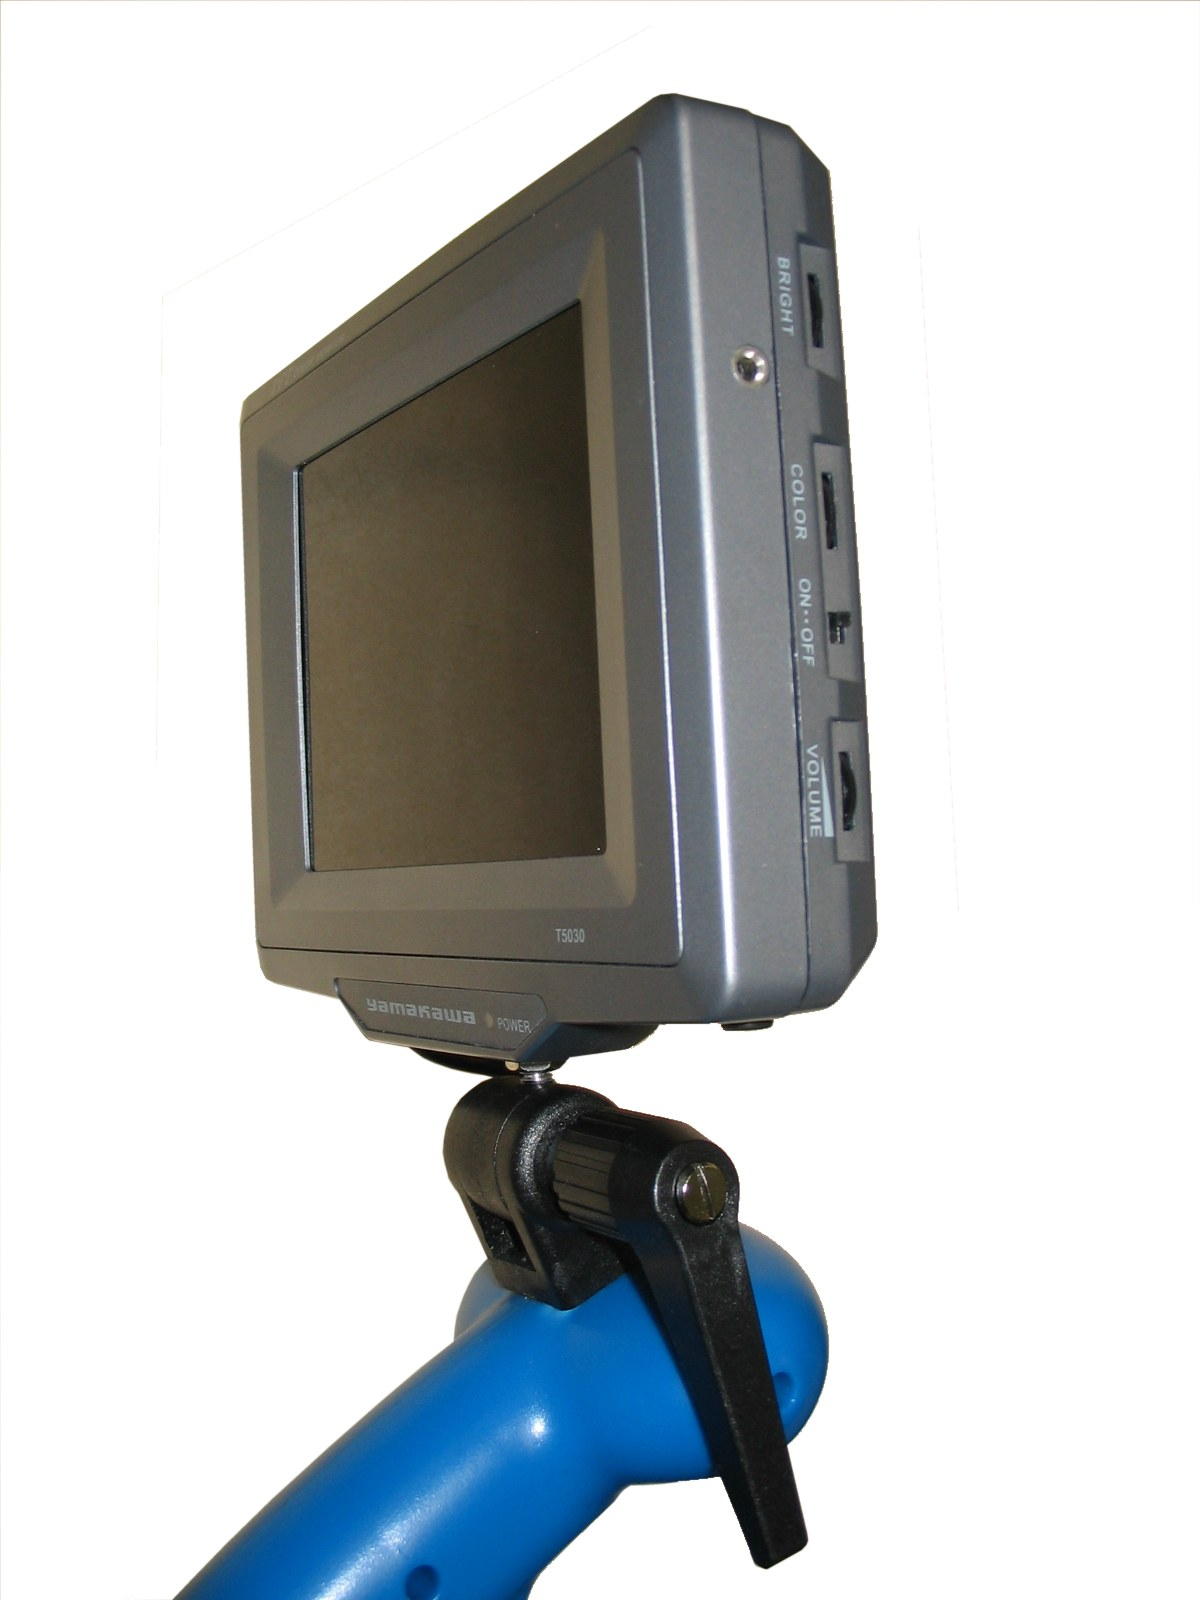 Pagix Under Vehicle Search Device Em1ir Contrast Control For Lcds The Display Has A 6 Tft Lcd Colour Screen With Manual Brightness And In Pivoting Heavy Duty Metal Housing